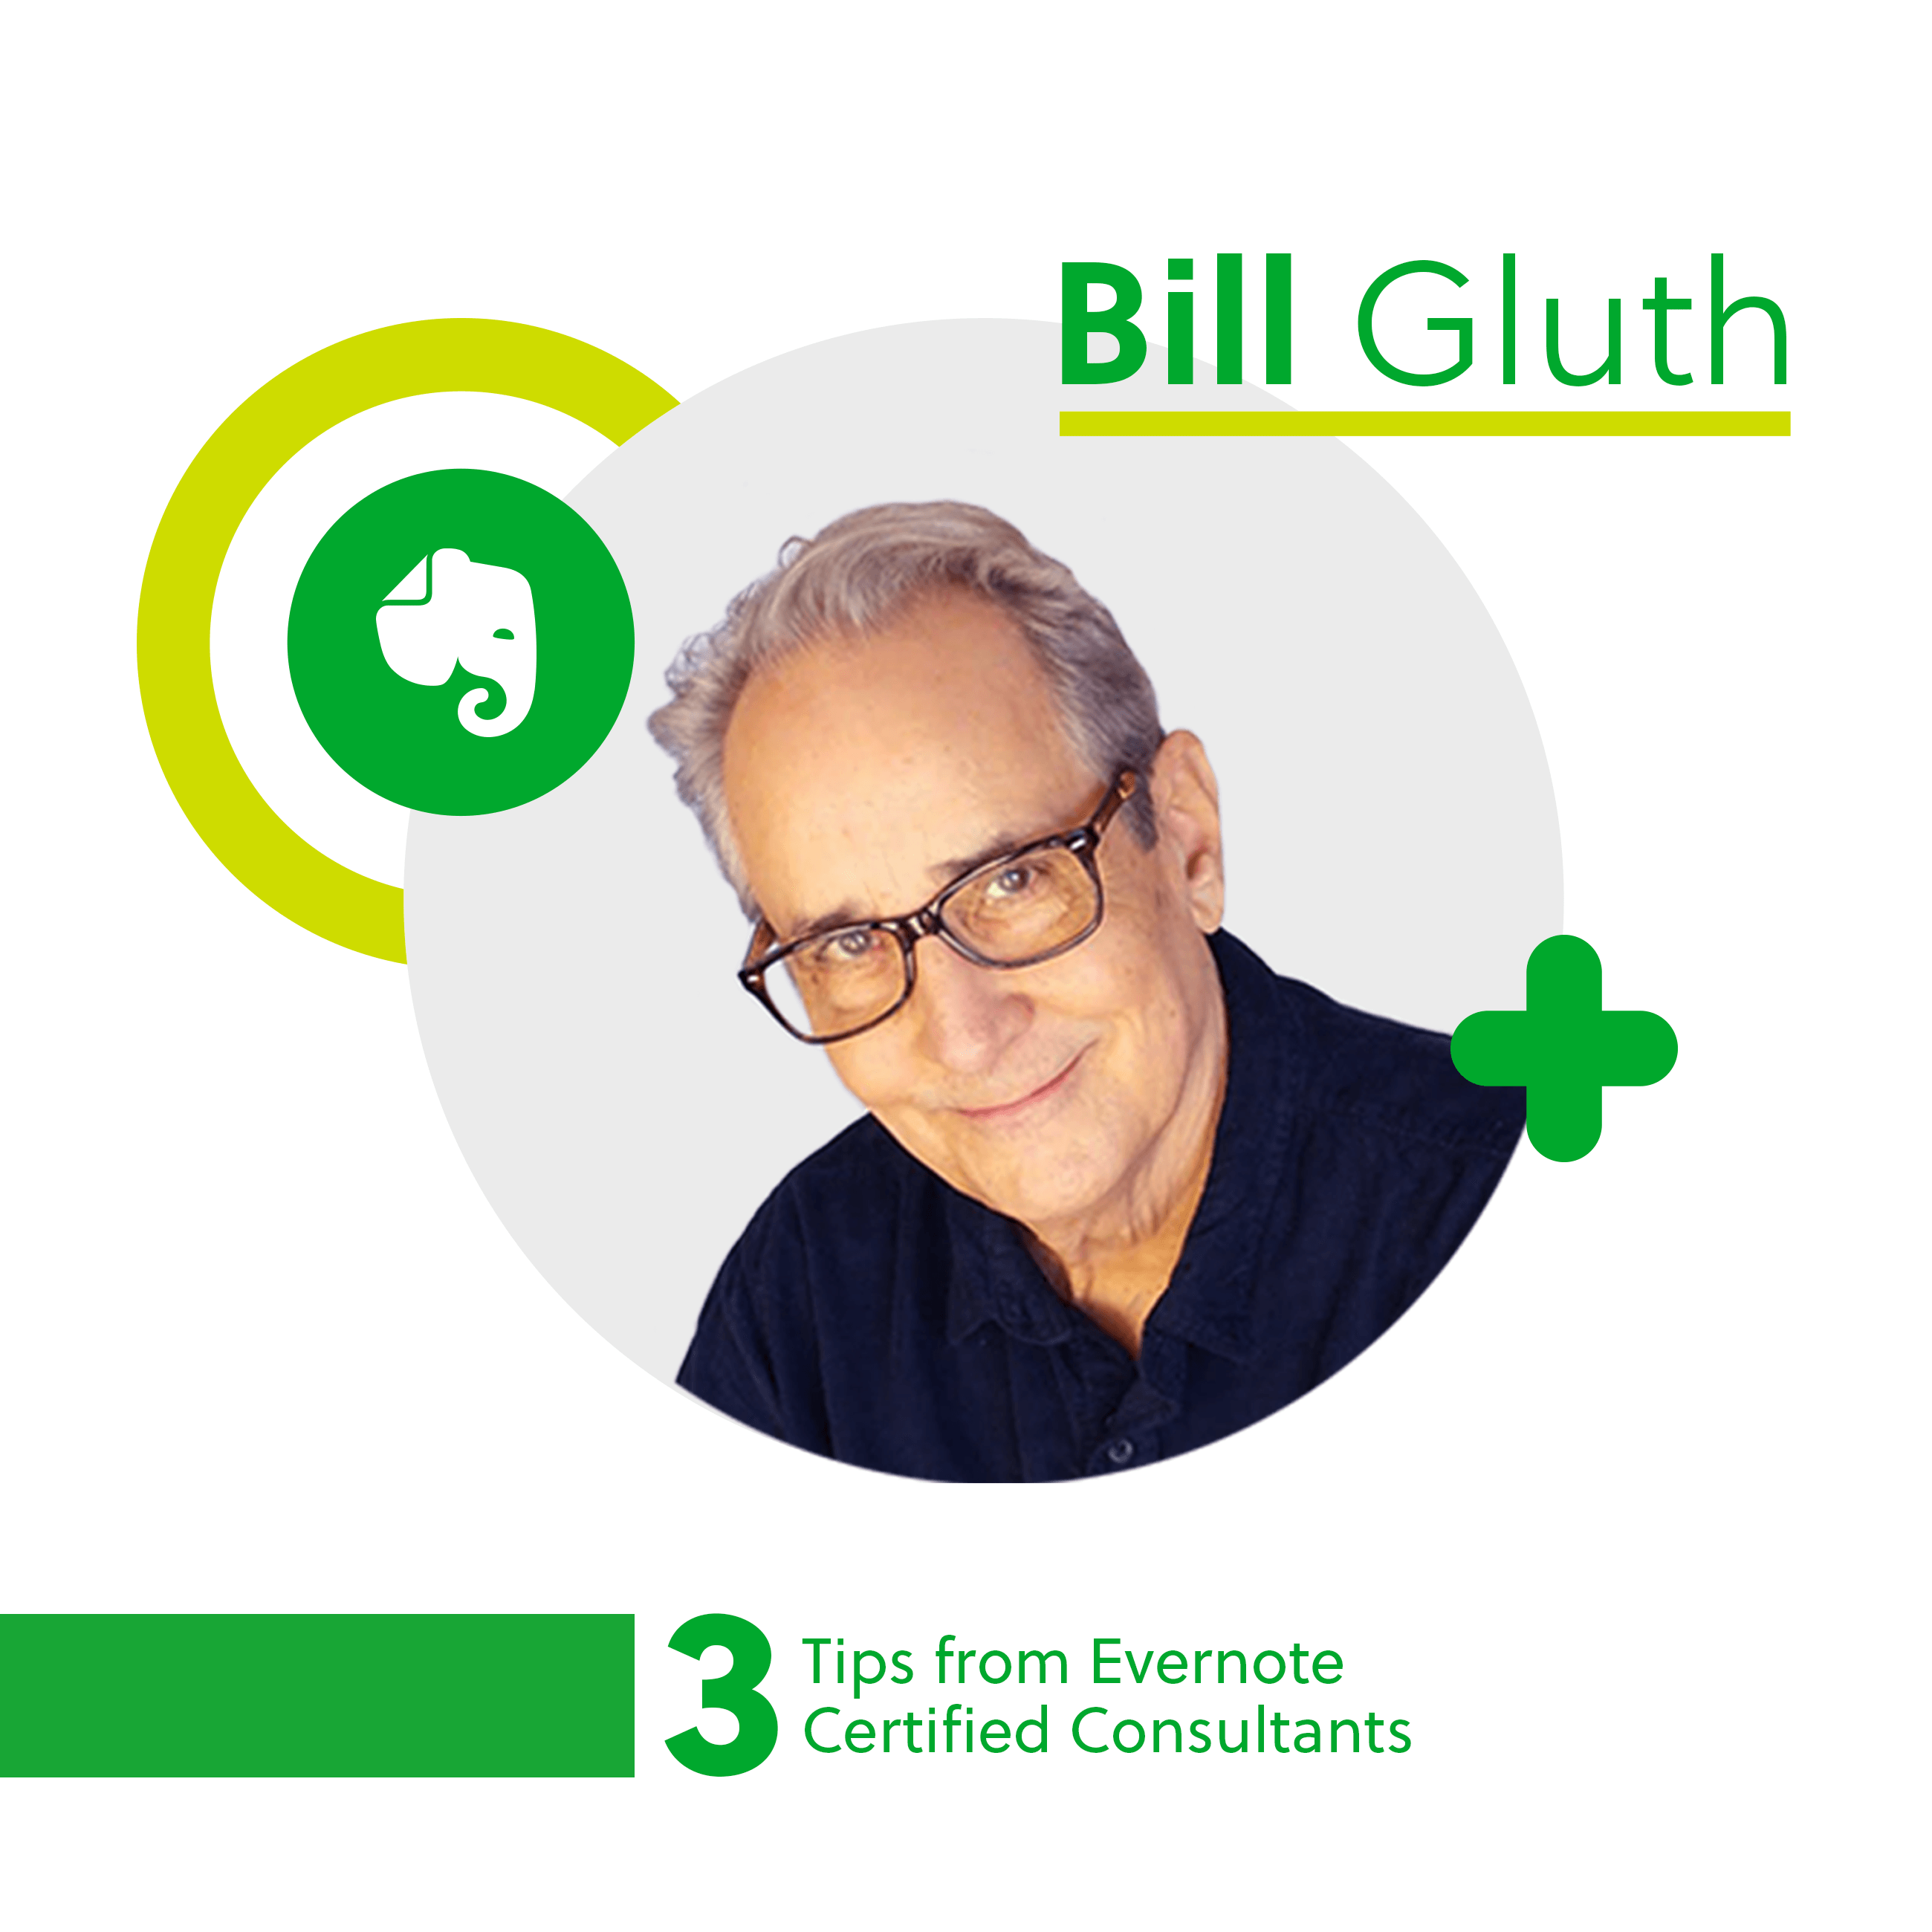 Evernote Certified Consultant Bill Gluth.